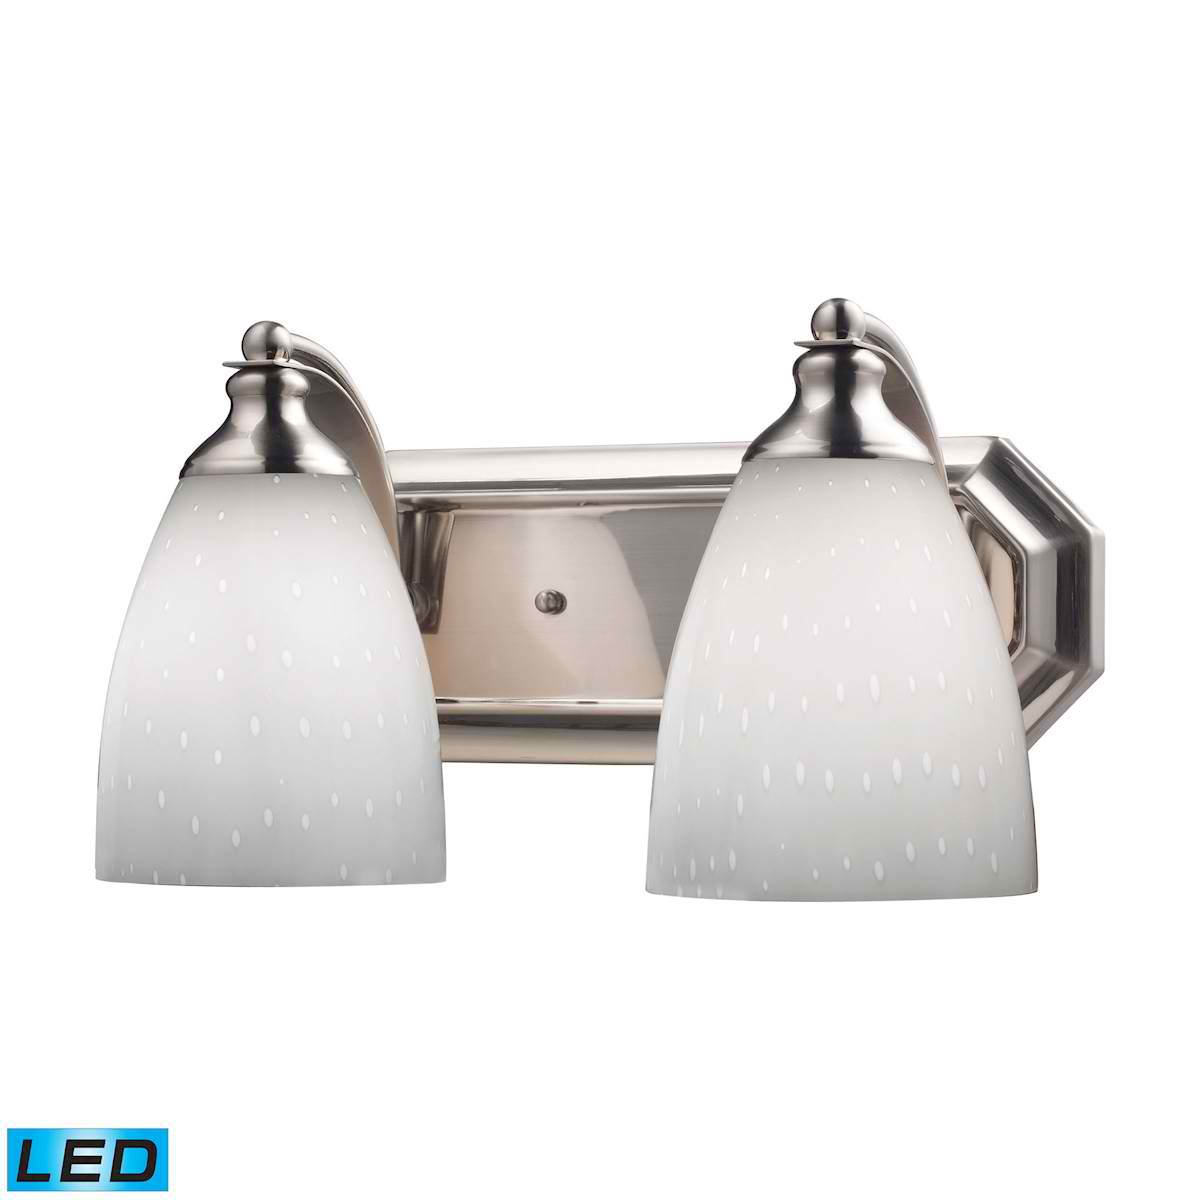 2 Light Vanity in Satin Nickel and Simply White Glass - LED, 800 Lumens (1600 Lumens Total) with Full Scale